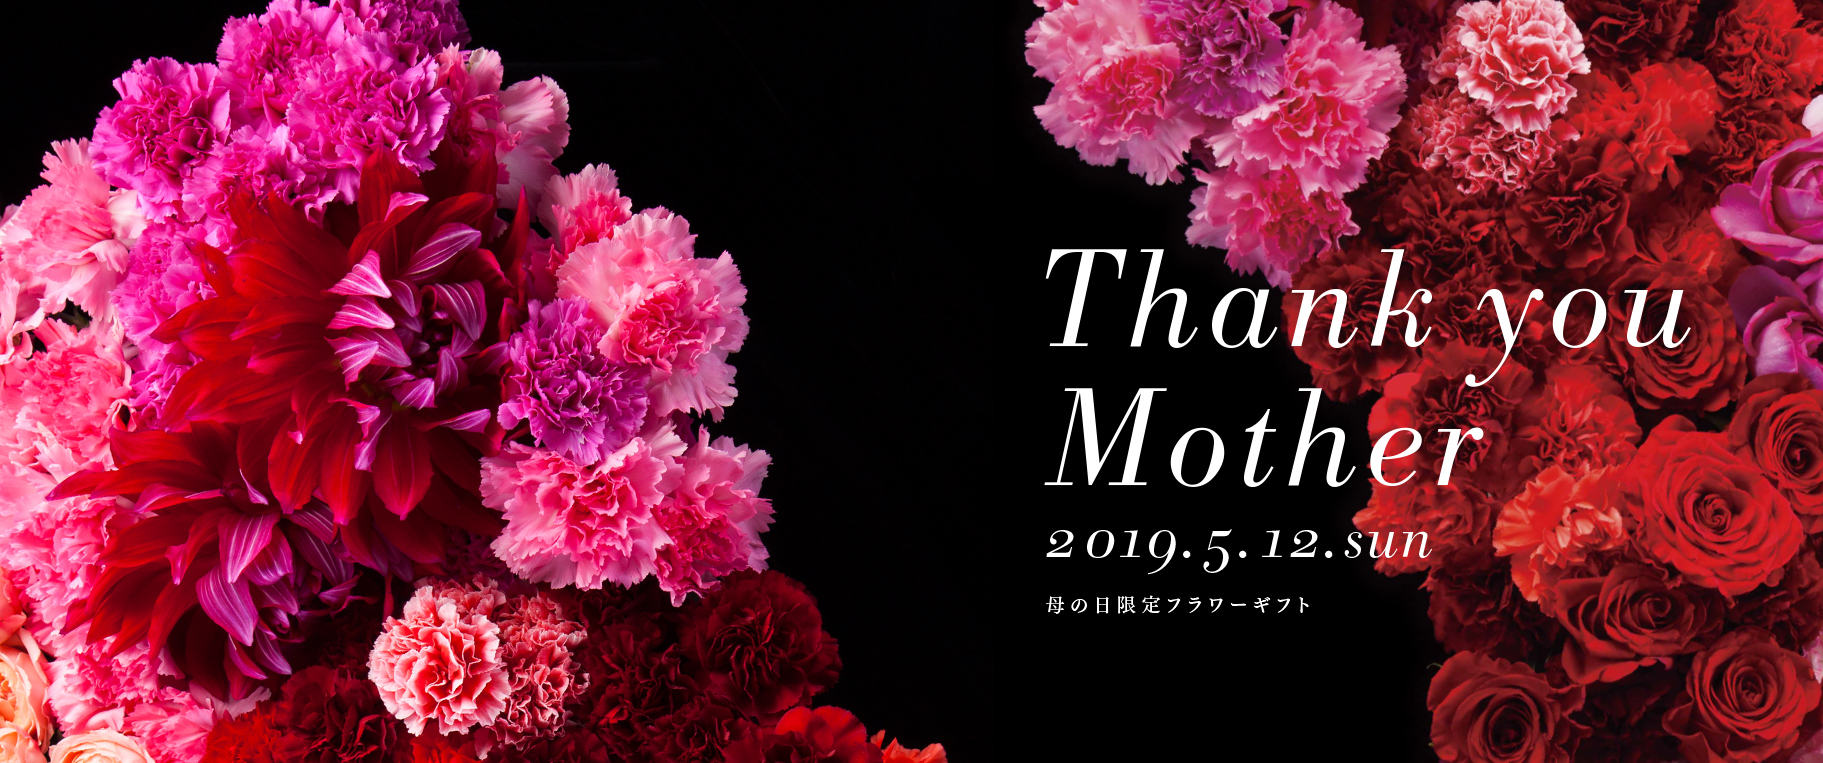 Thank you Mother 2019 / 母の日フラワーギフト